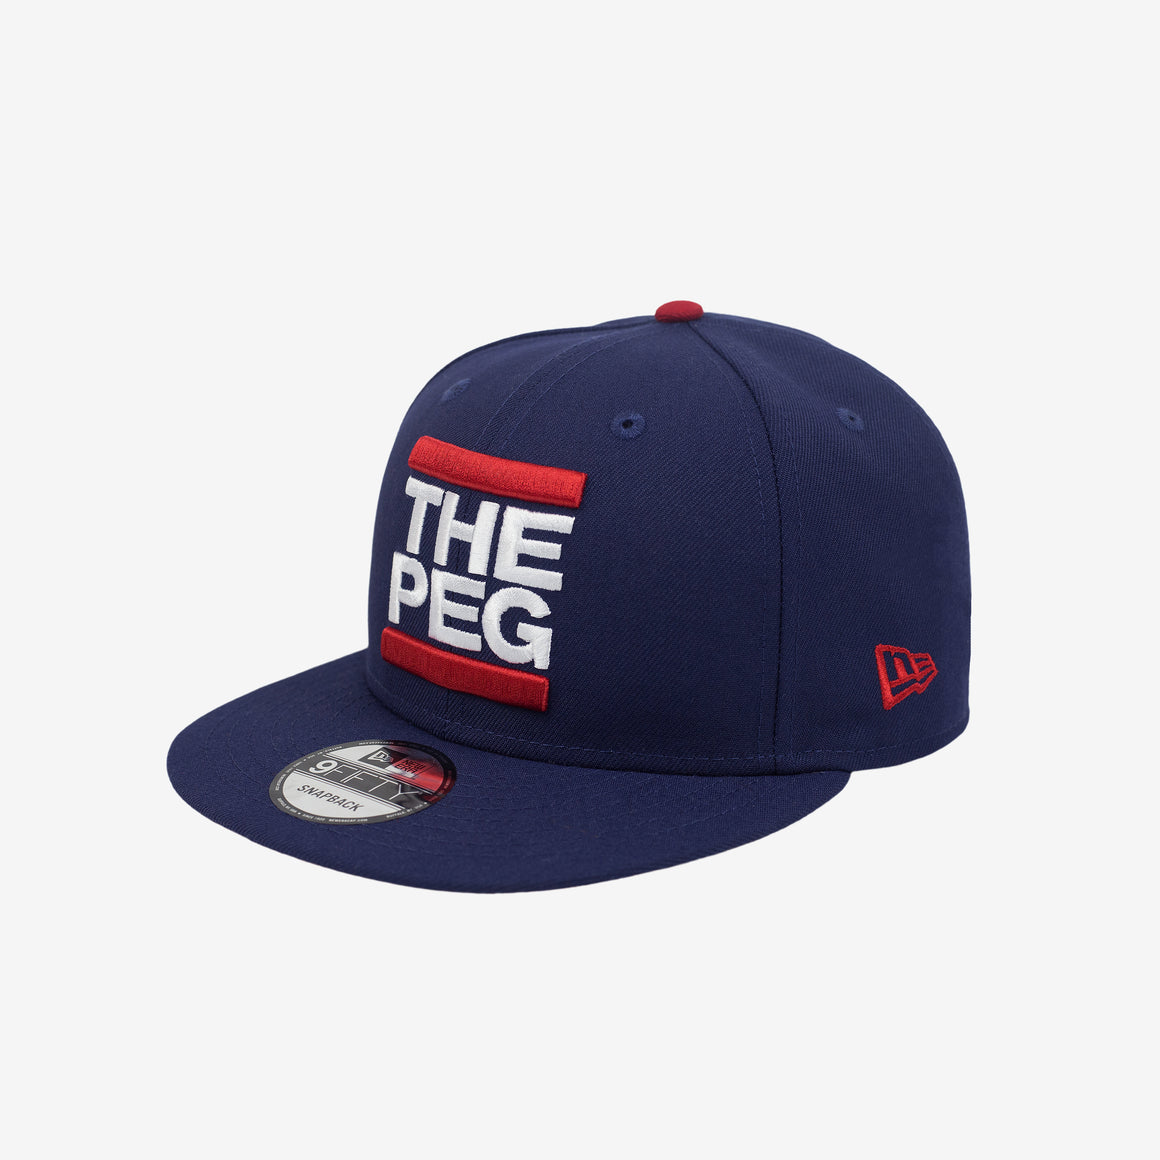 New Era 9FIFTY Classic Snapback (Navy, Scarlet)